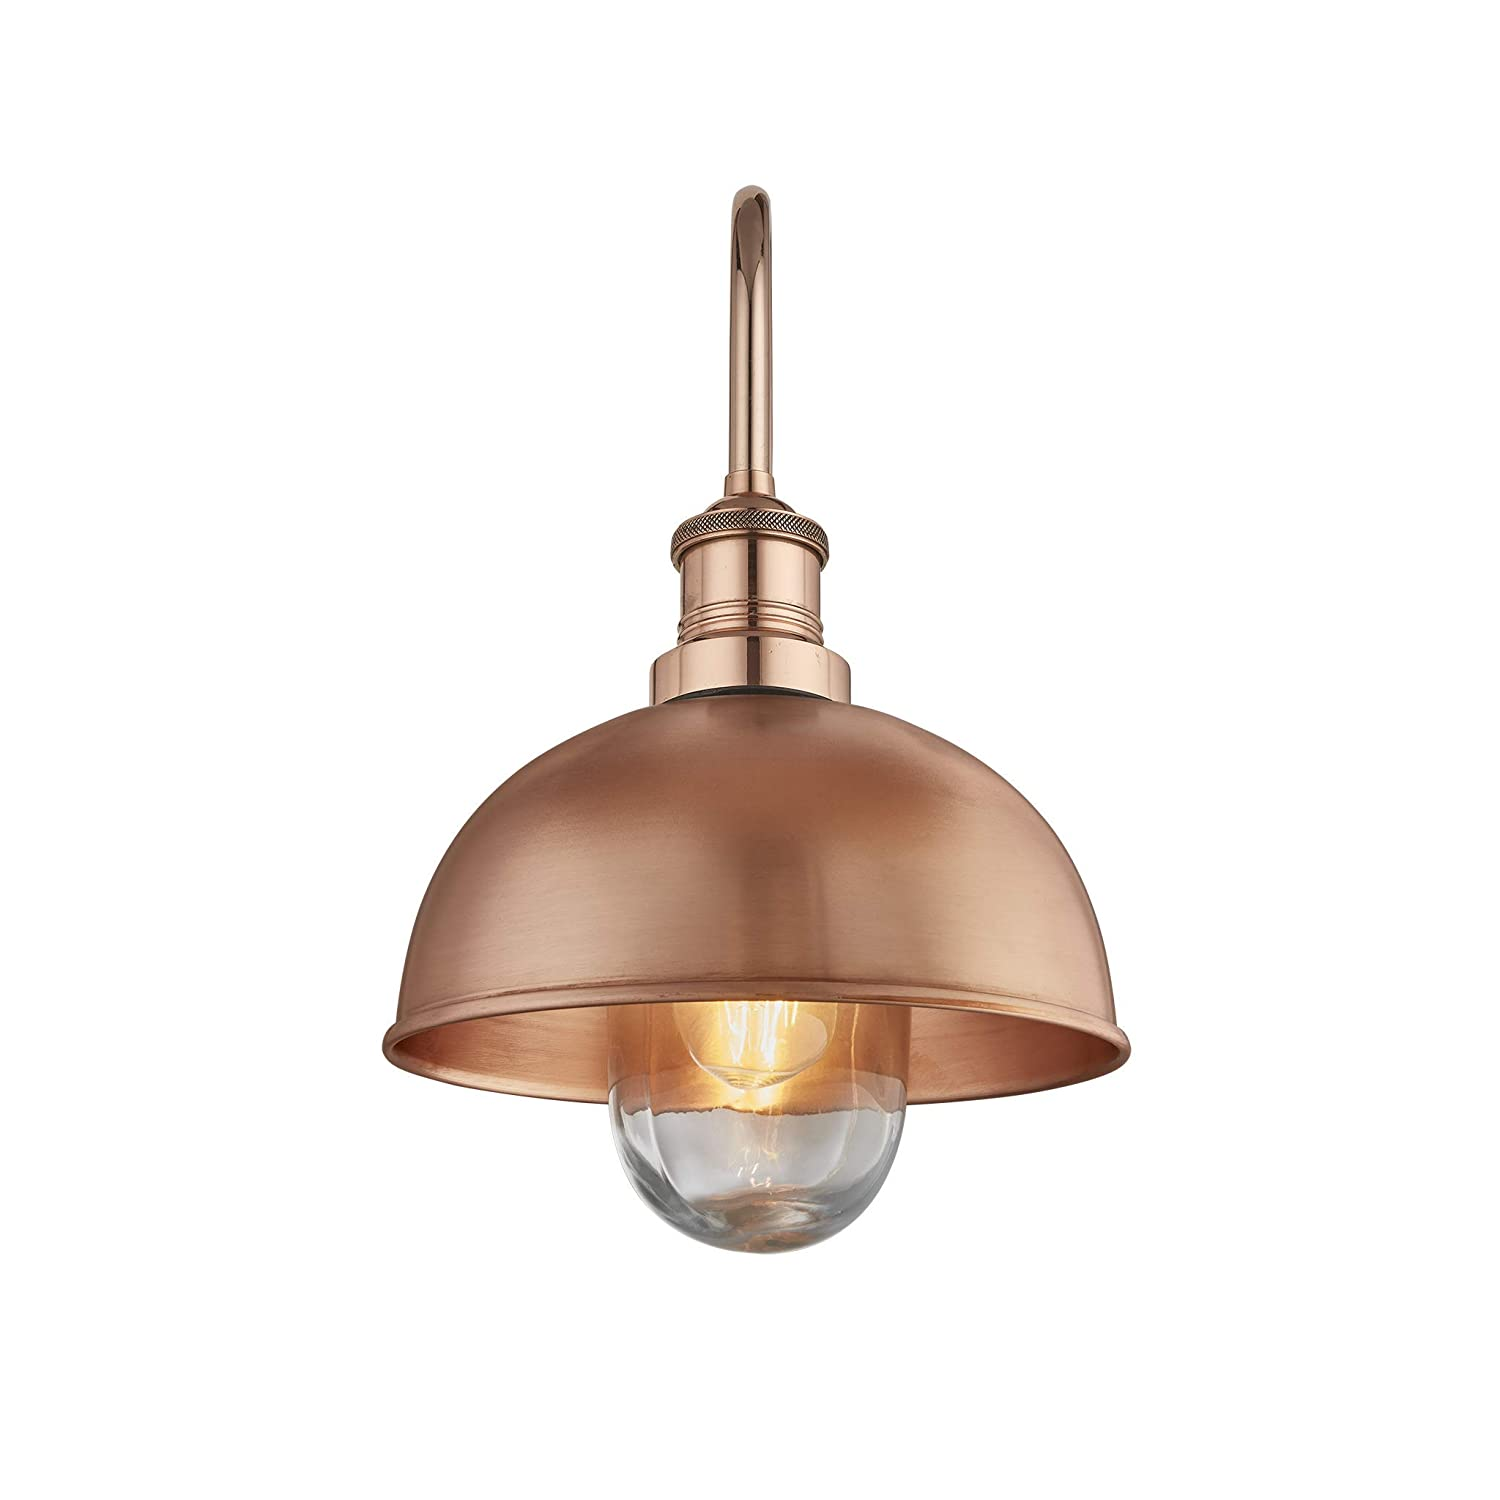 Industville 8 Inch Outdoor /& Bathroom Swan Neck Dome Wall Light Copper//Pewter Material Water /& Weather Proof